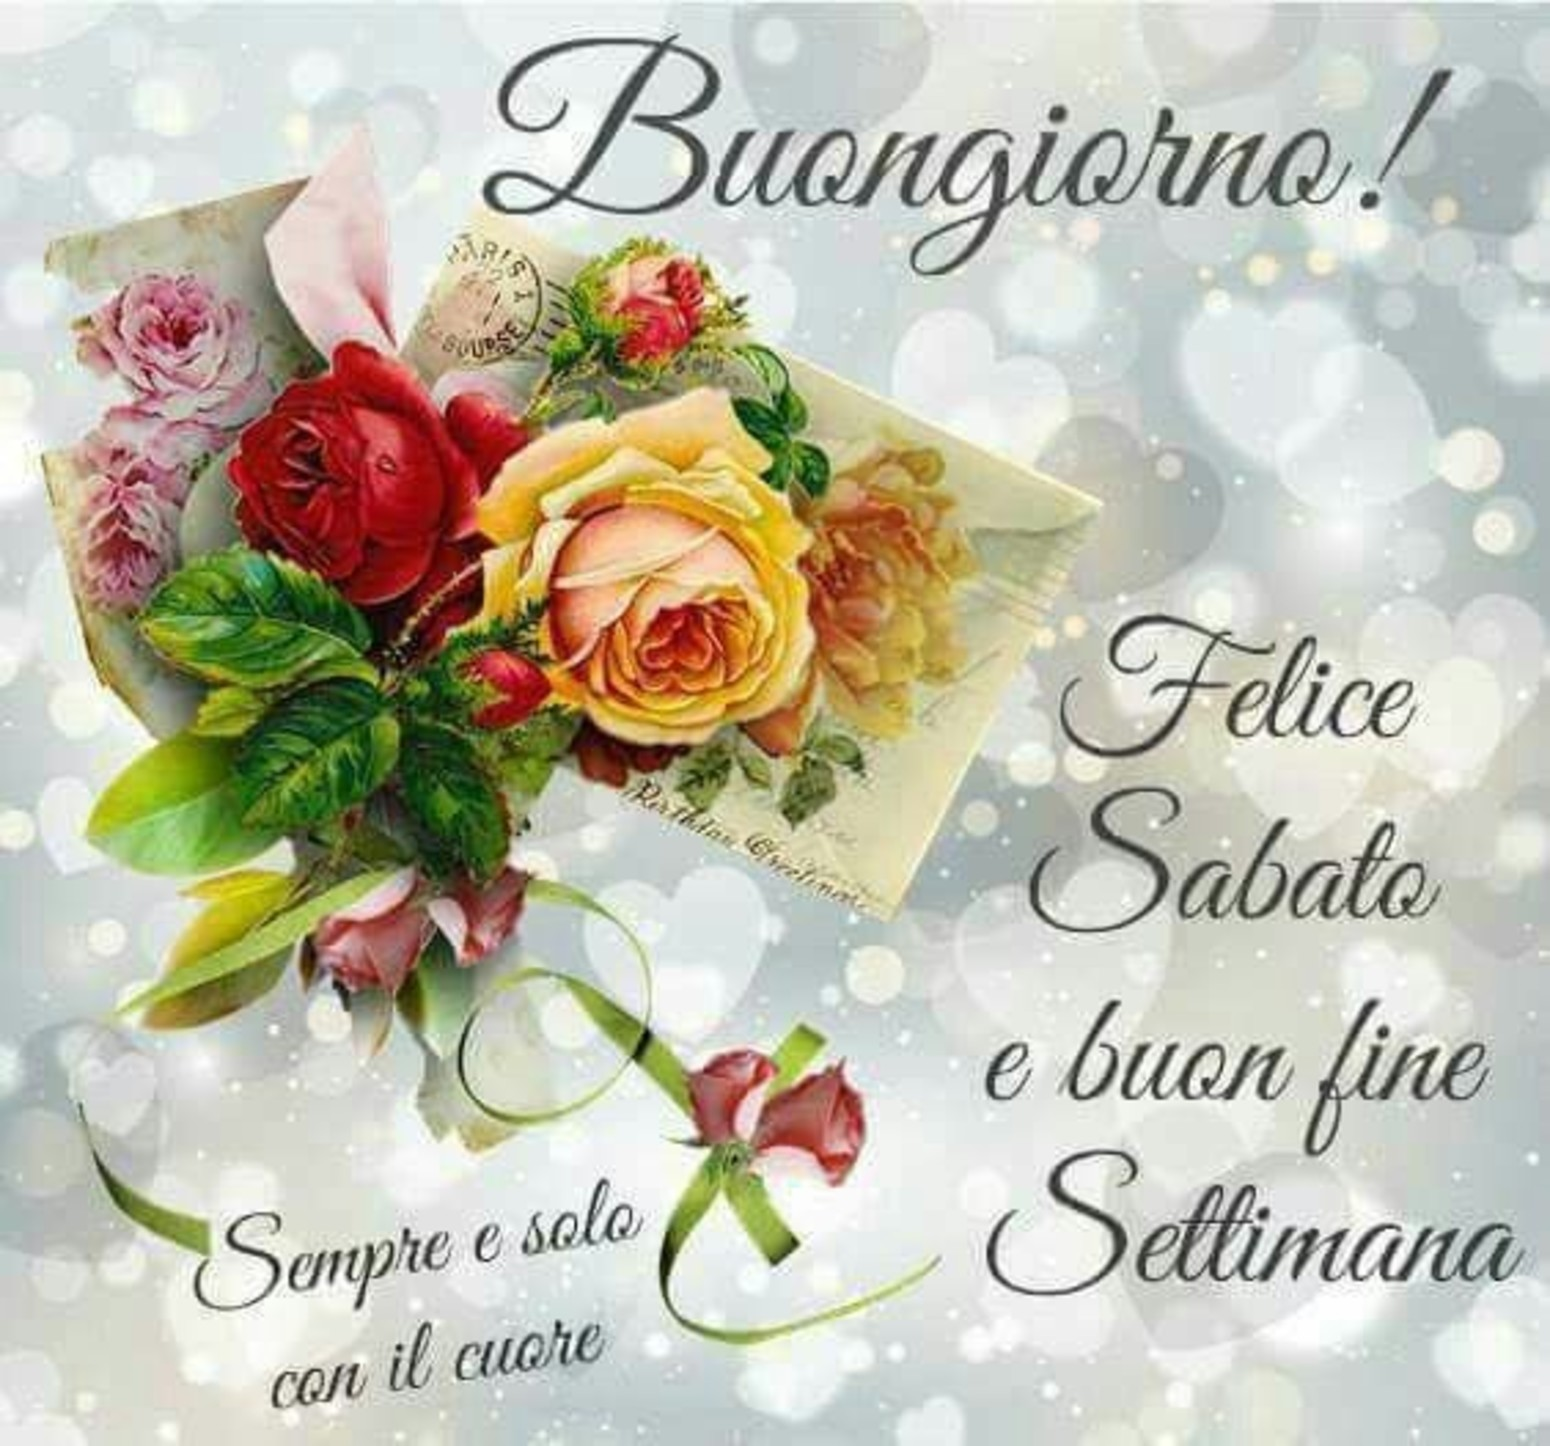 Buon Sabato Whatsapp 8608 Archives Immaginifacebook It